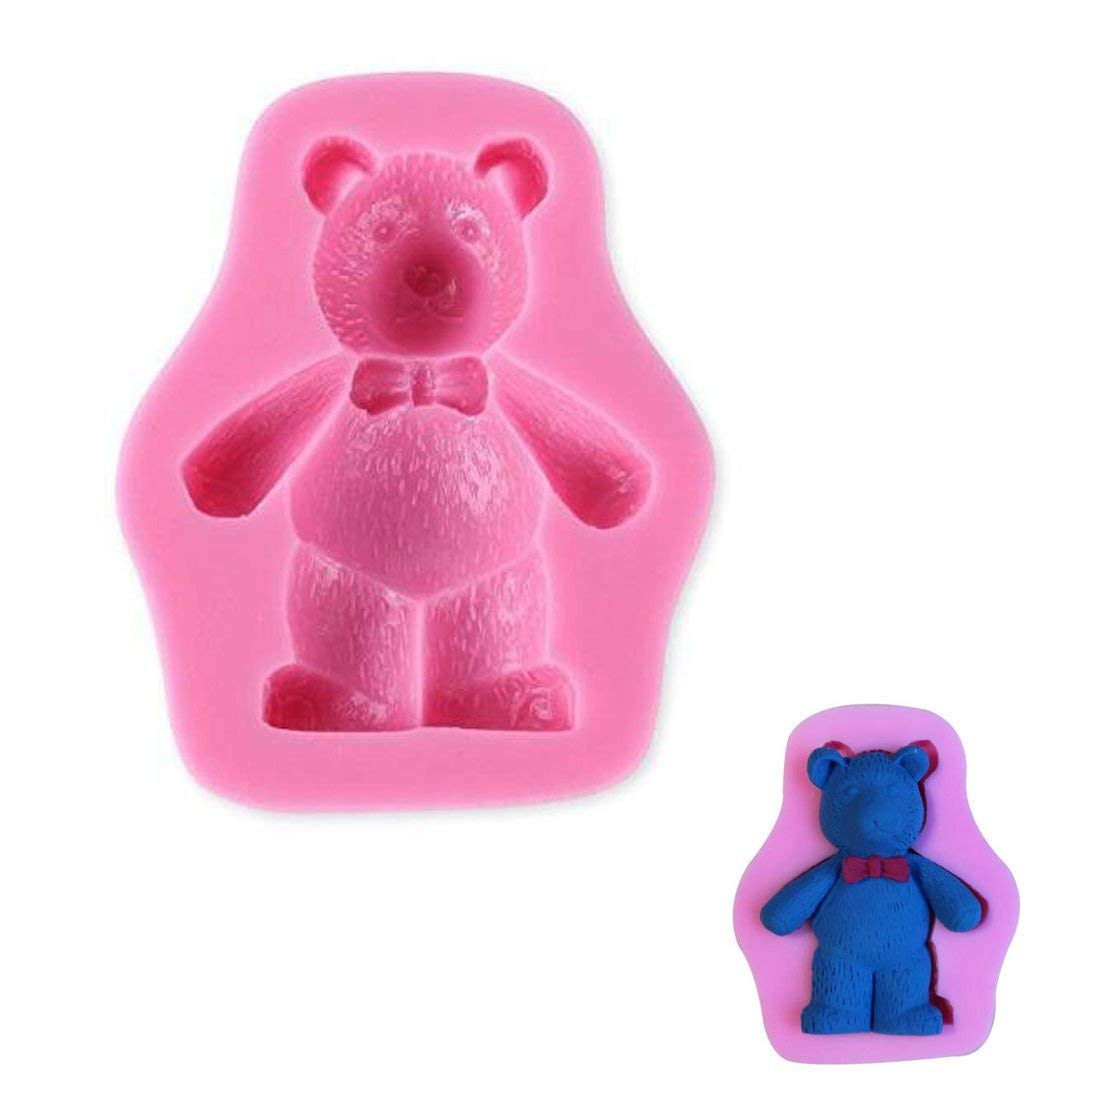 WJSYSHOP Bear Shape Silicone Fondant Mold Decorating Cake Baking Mould – Bear